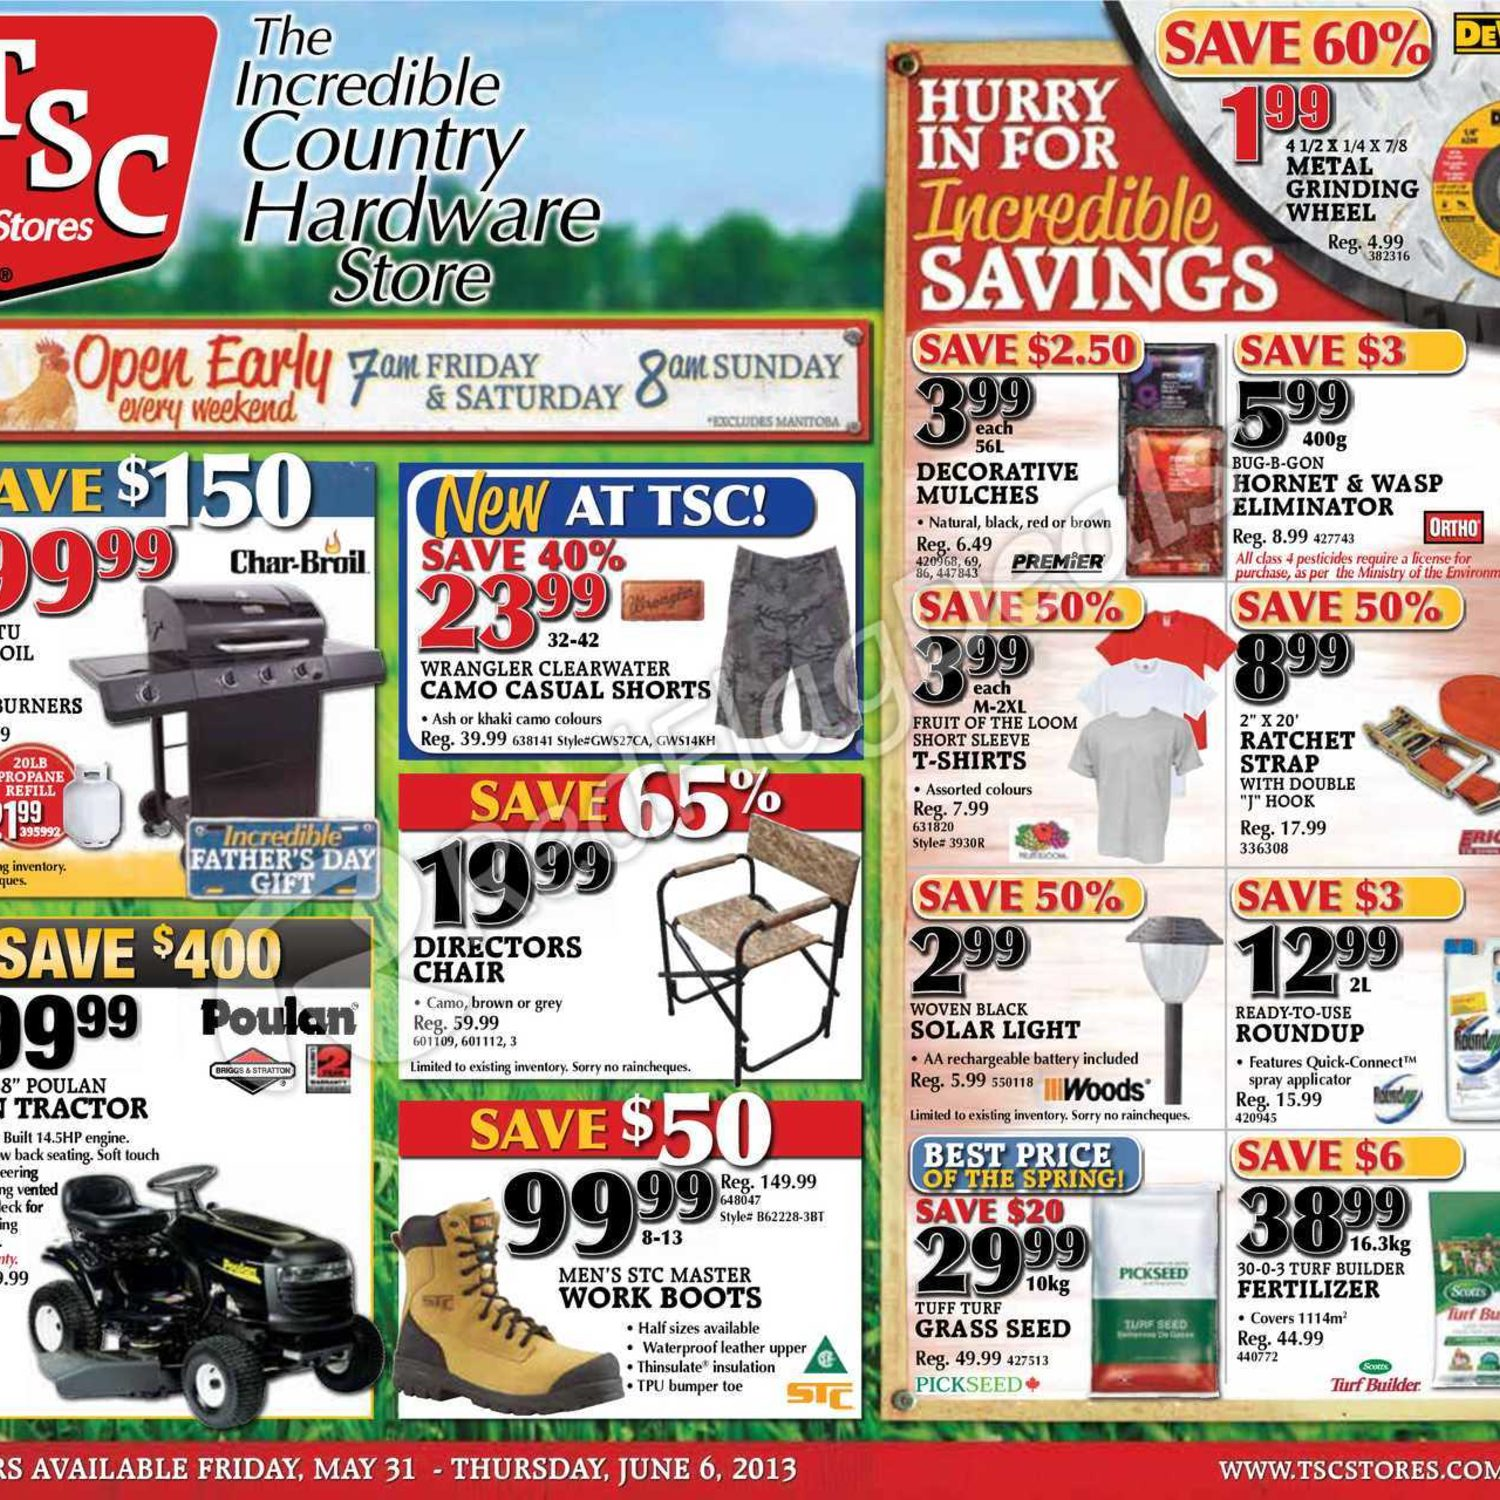 TSC Stores Weekly Flyer - Weekly Flyer - May 31 – Jun 6